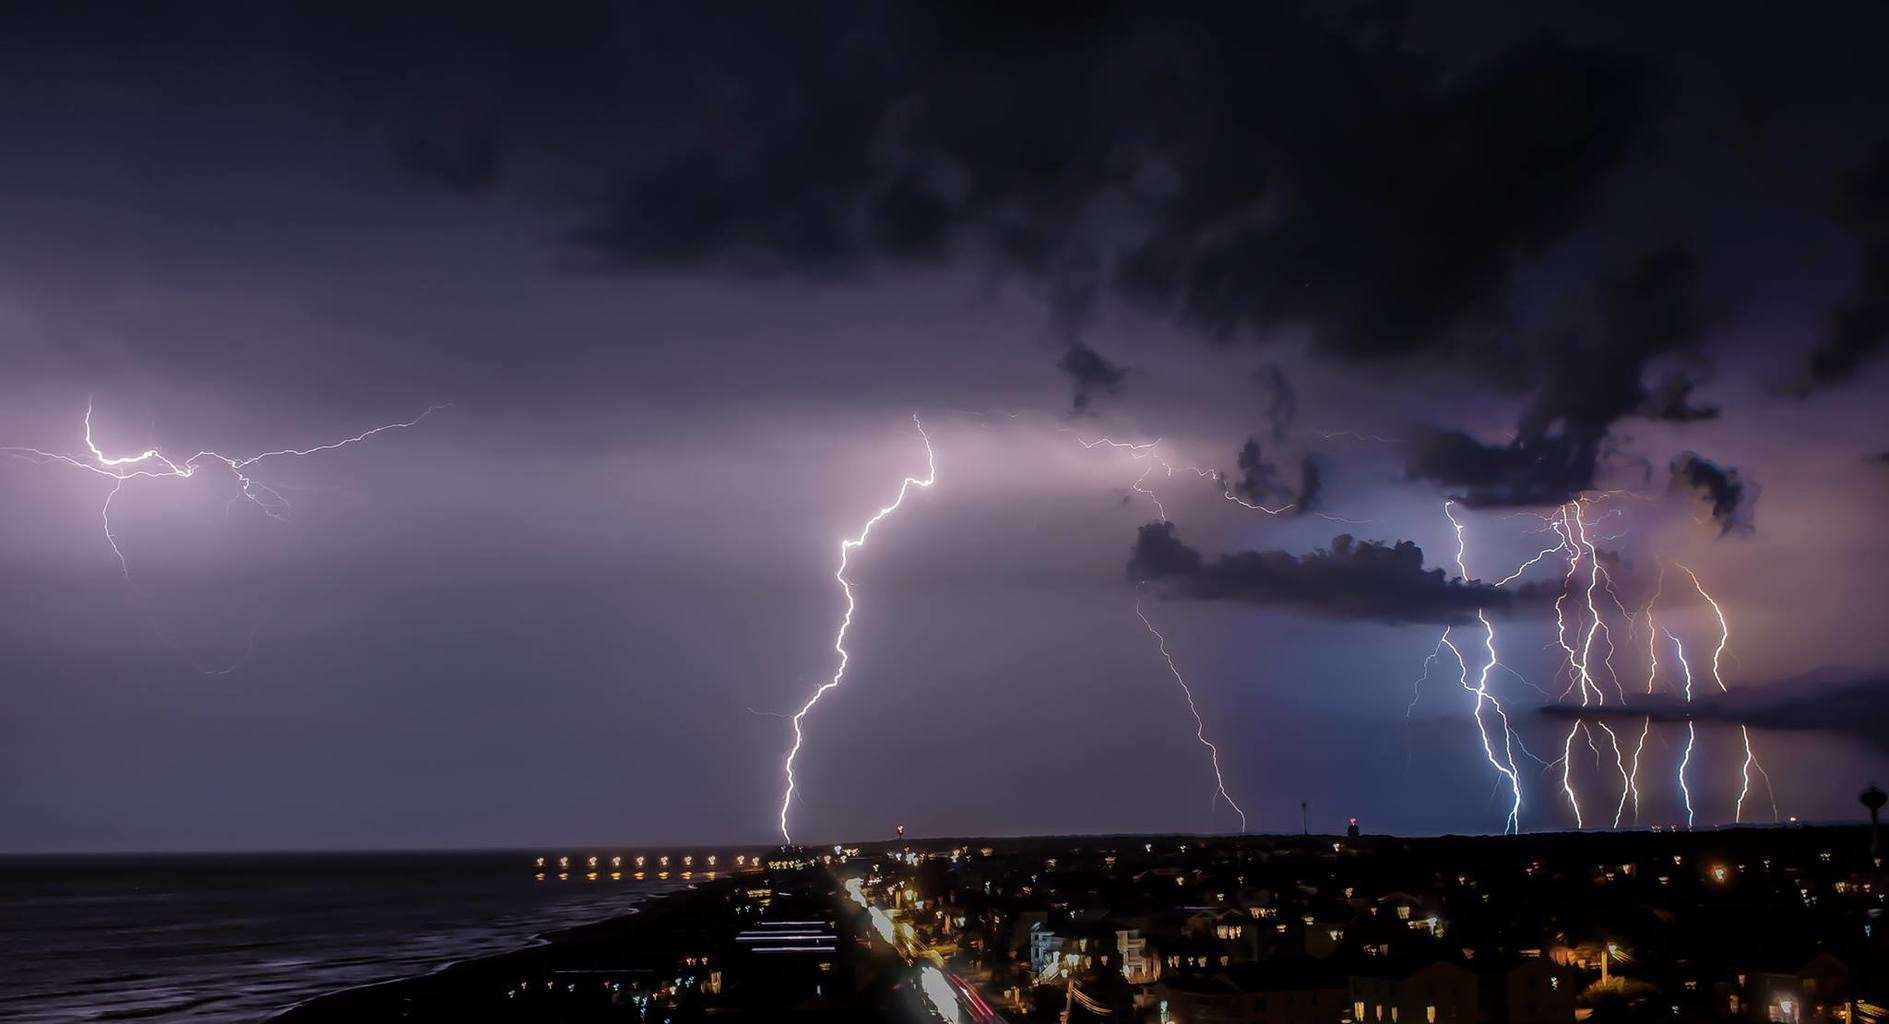 Taken on June 24th, 2015 in Carolina Beach, NC, as an electrifying thunderstorm passed by.